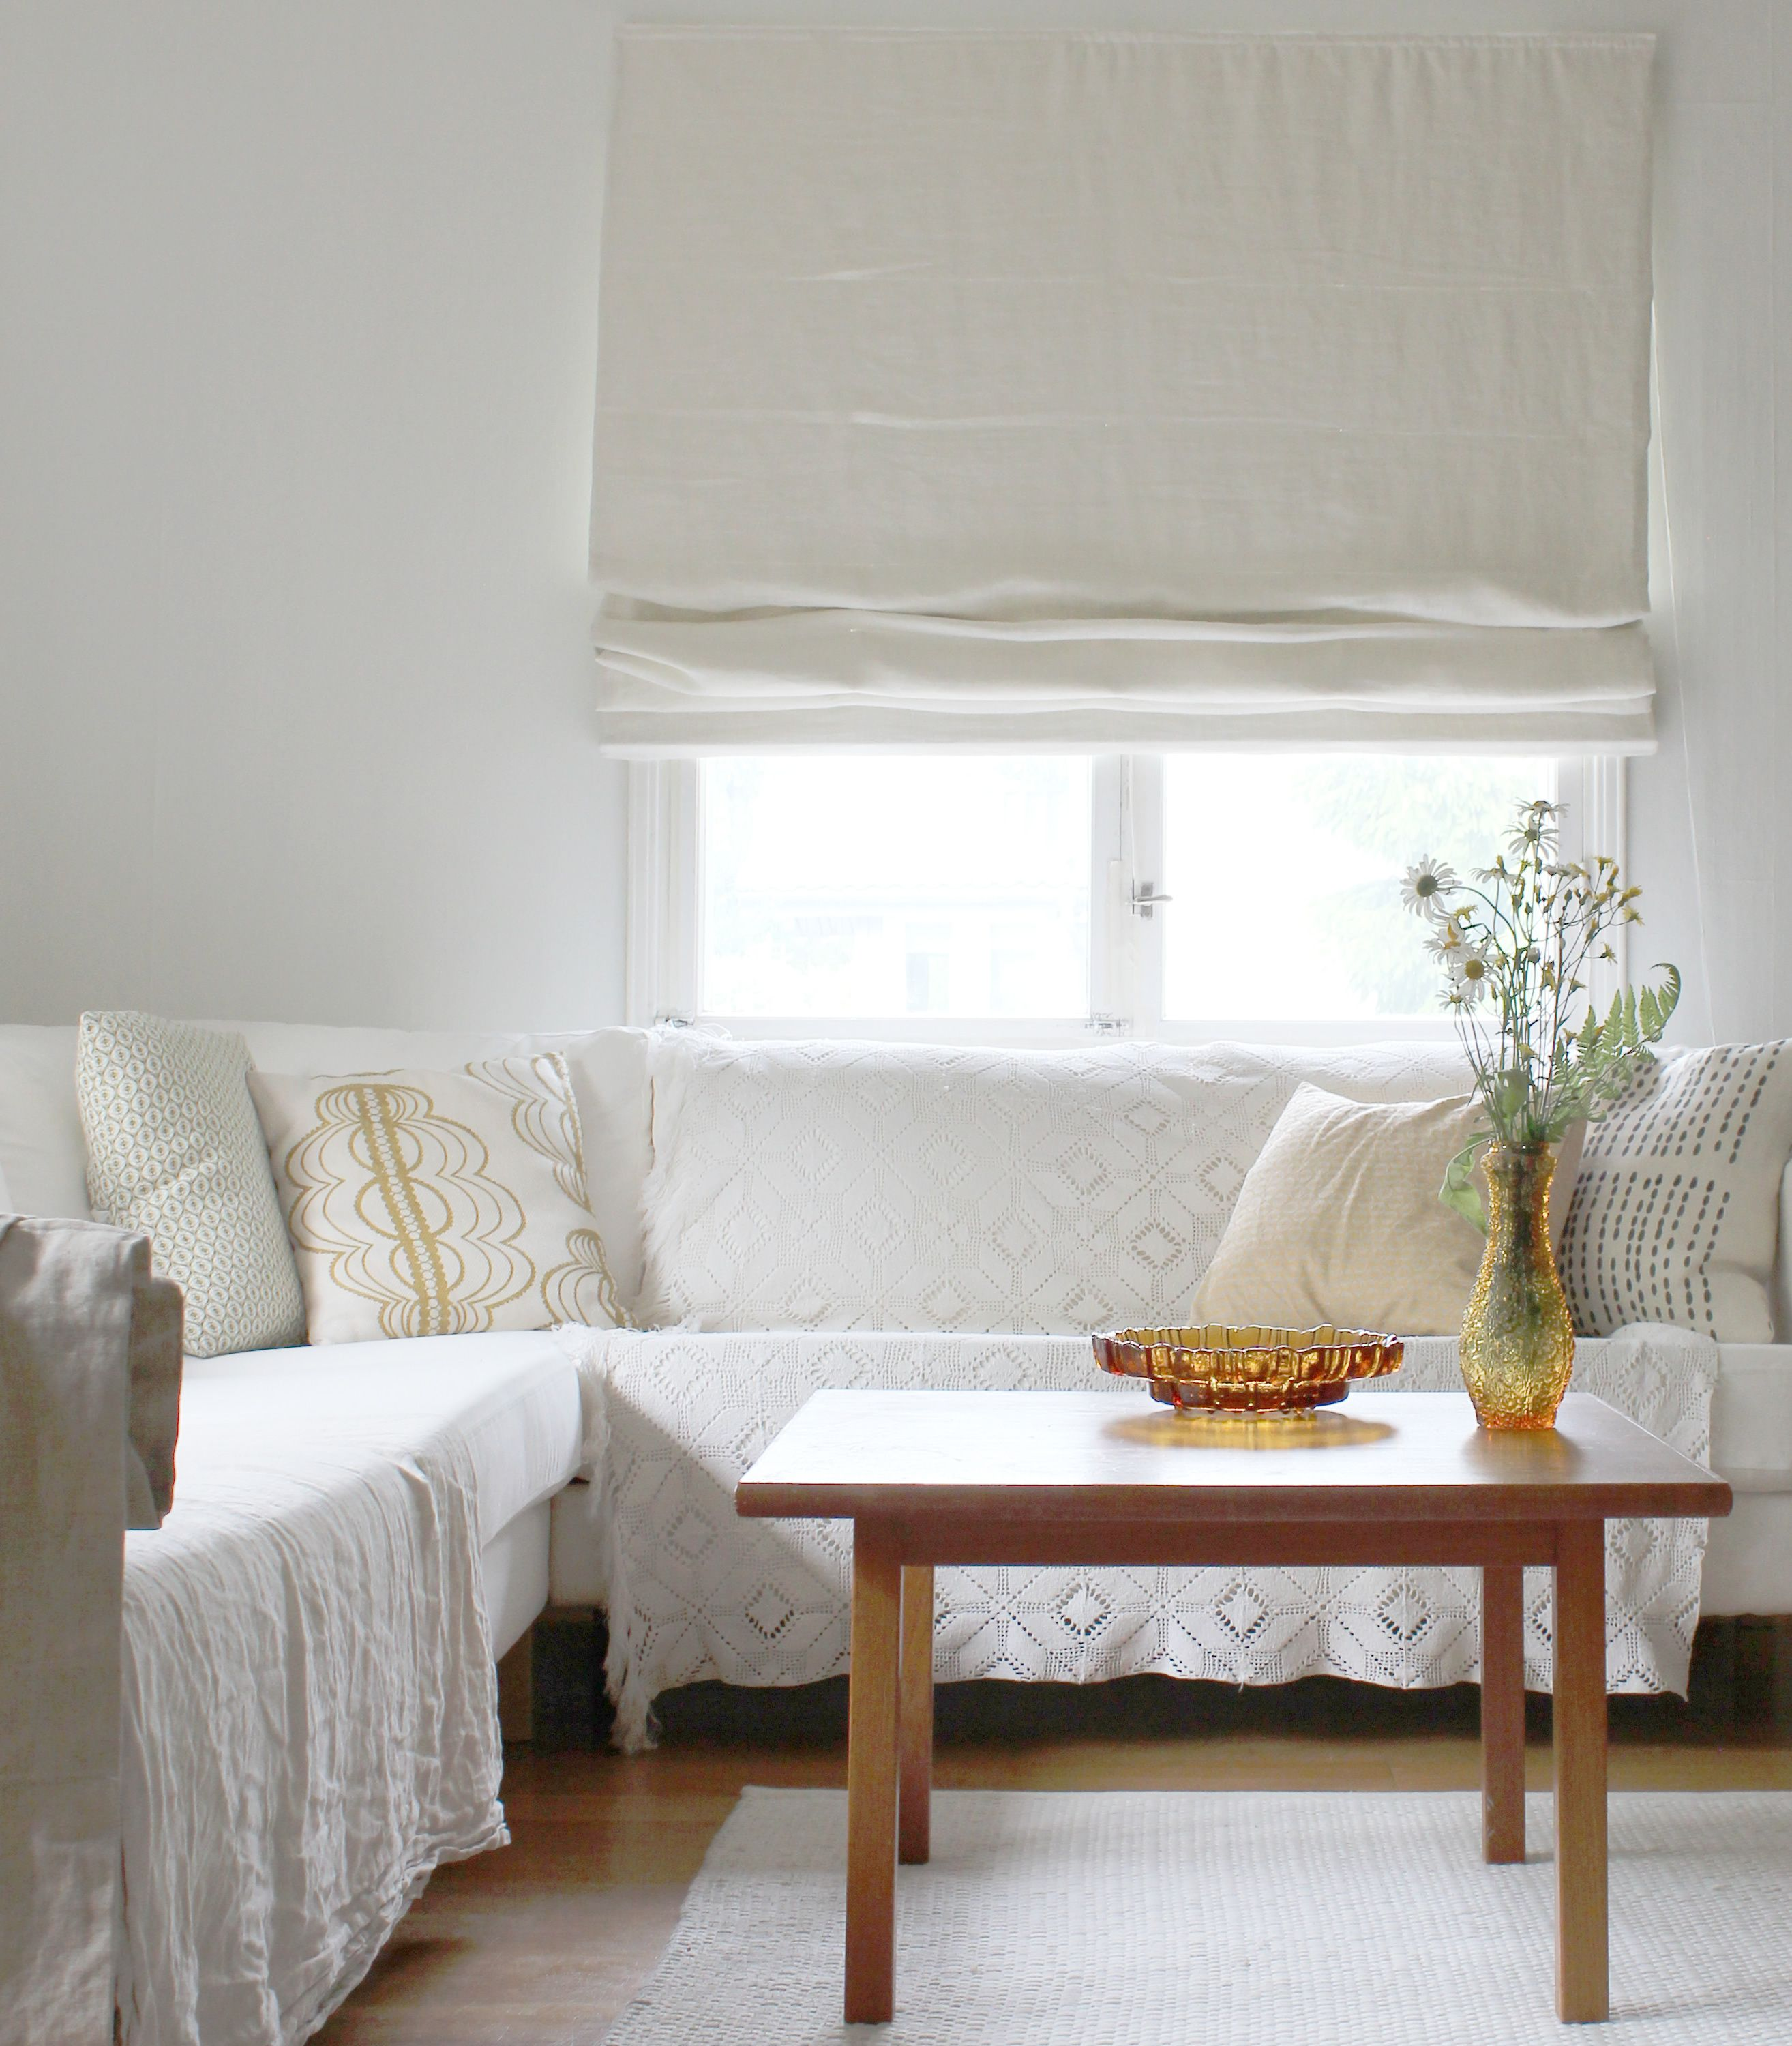 House Tour Relaxed Vintage Style In The Finnish Countryside White BlindsWhite CurtainsScandinavian Living